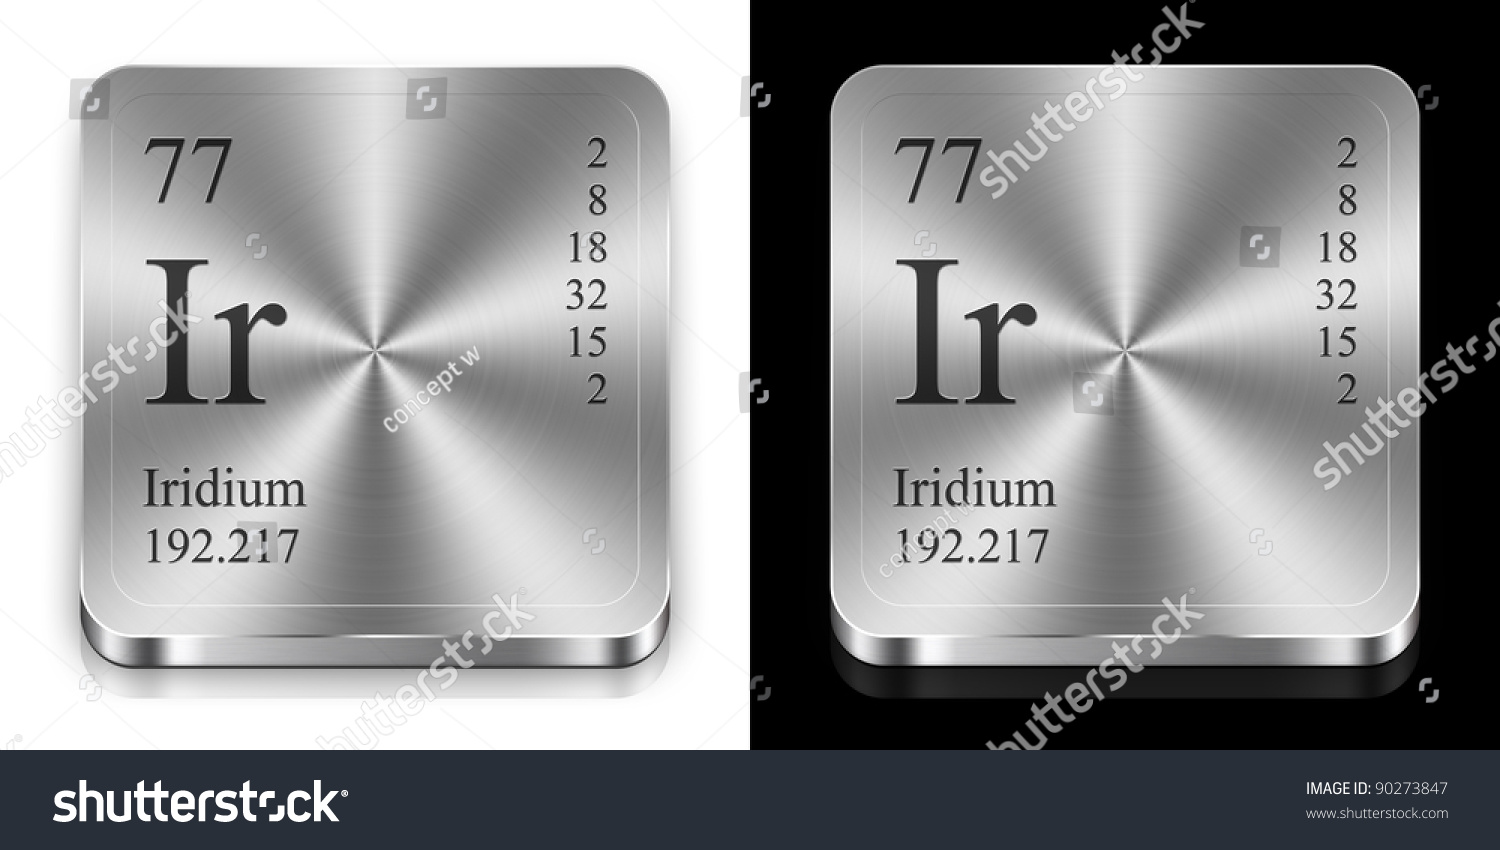 What is the heaviest element on the periodic table image heaviest element on the periodic table gallery periodic table images what is the 7th element on gamestrikefo Images